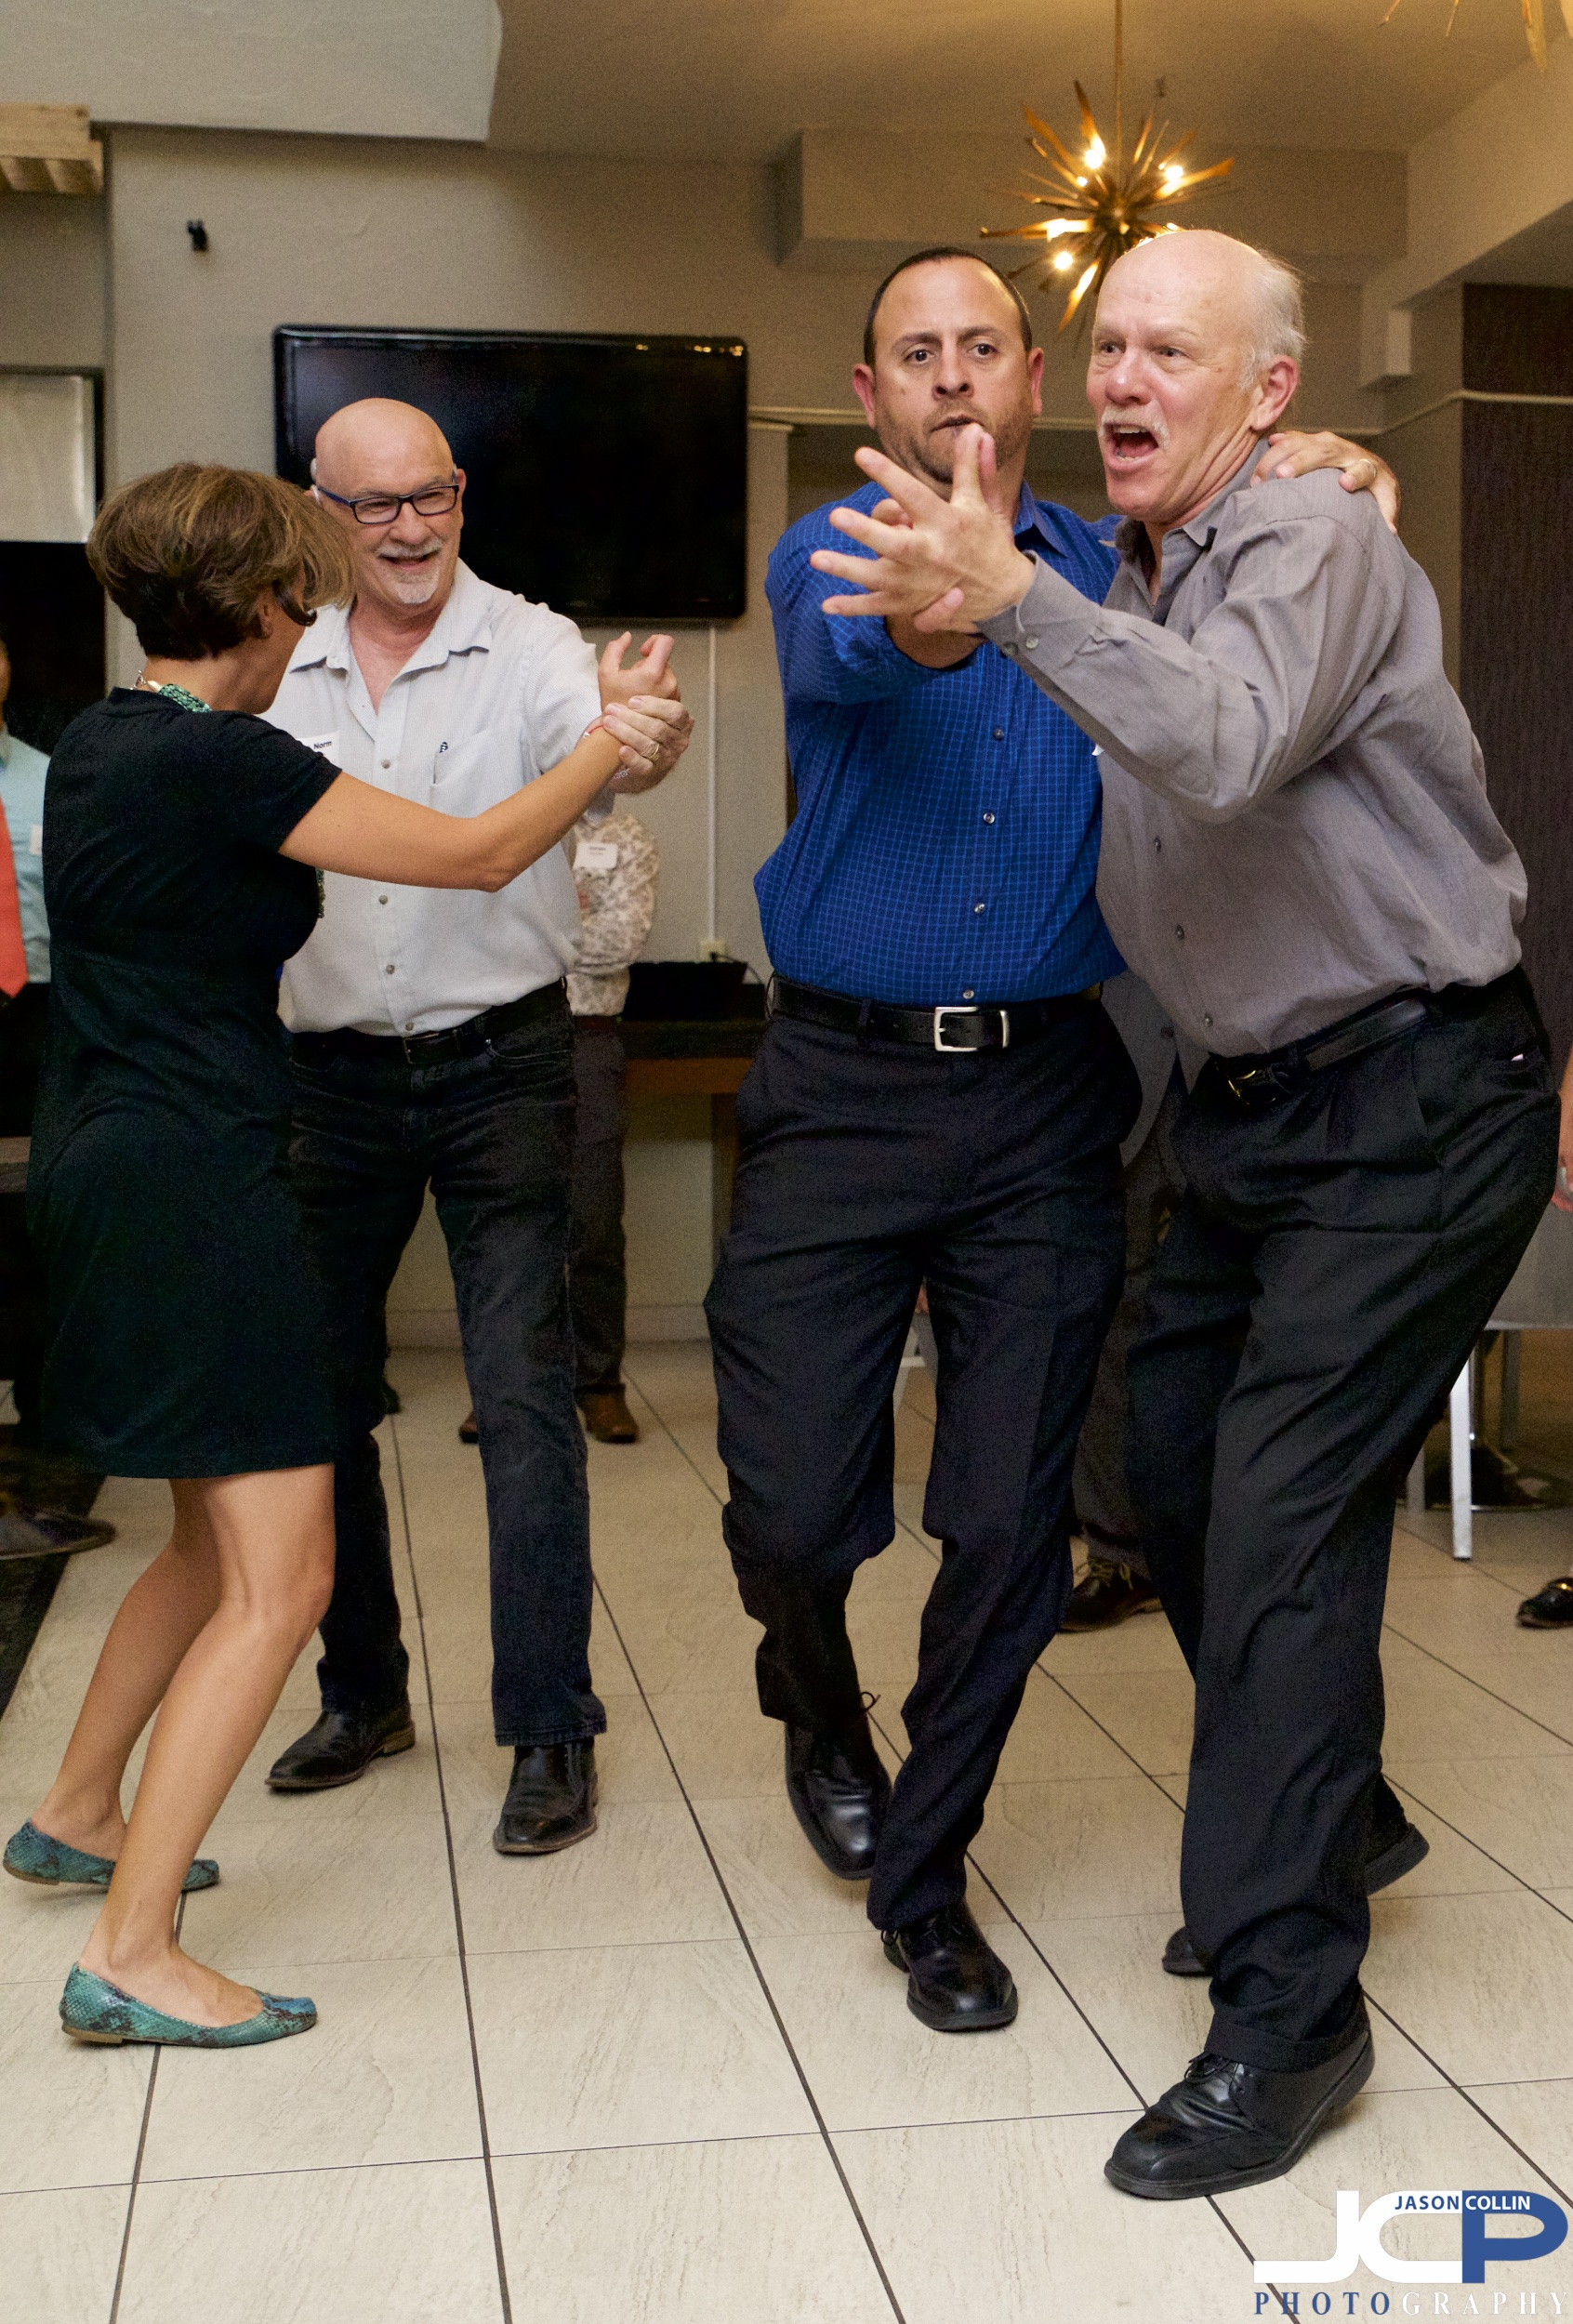 Is there dancing at the networking events you go to in Albuquerque, New Mexico??